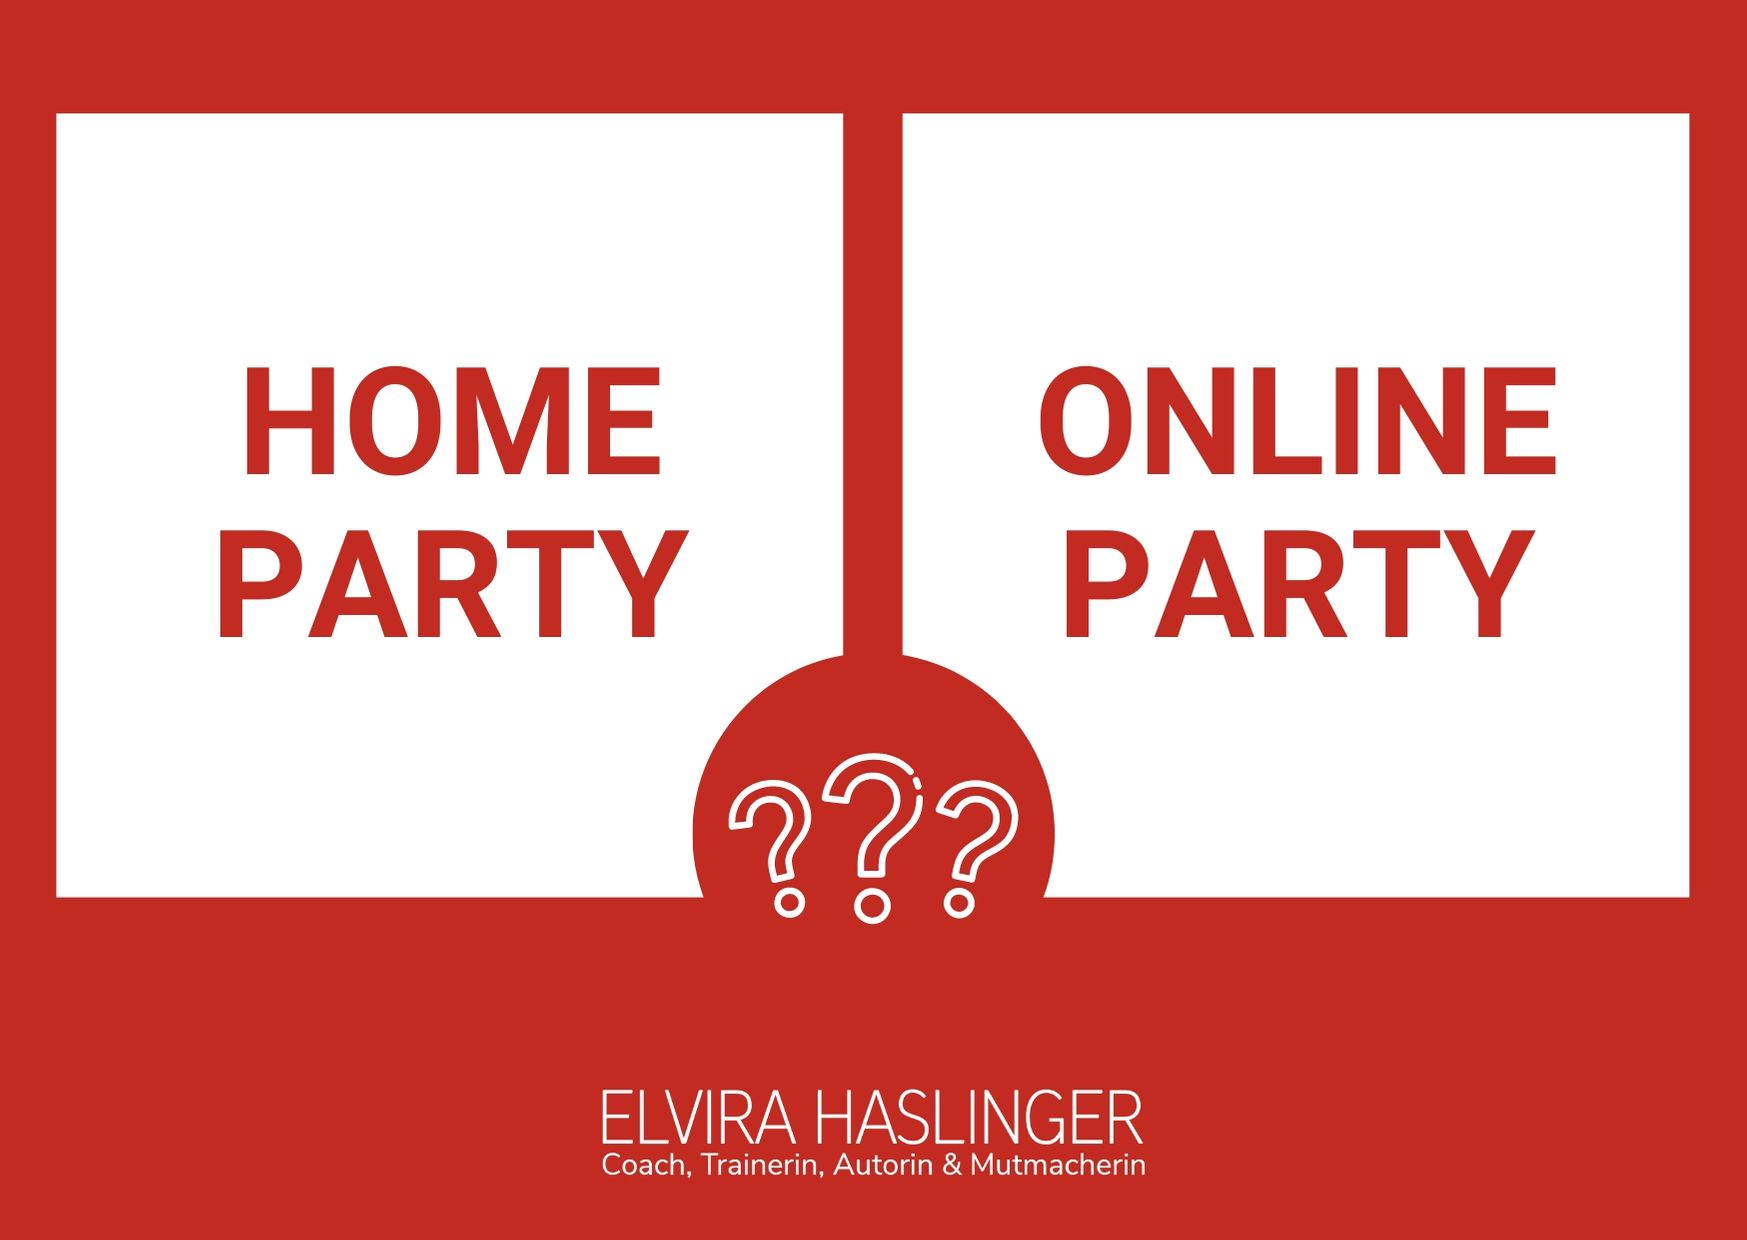 Homeparty oder Onlineparty